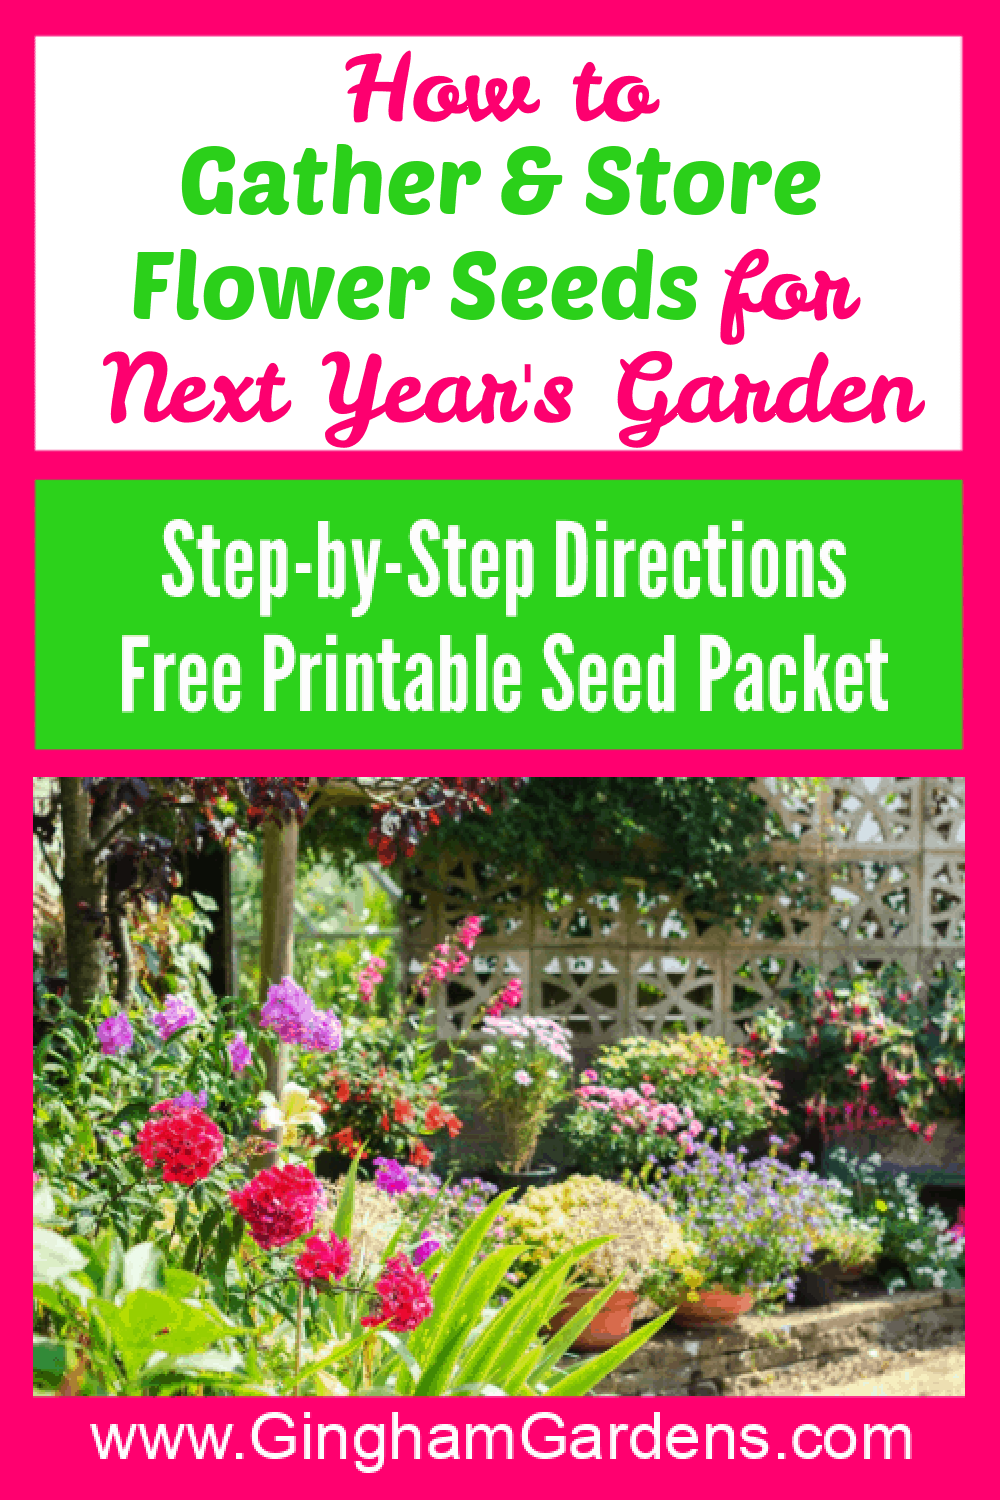 Image of Flower Garden with Text Overlay - How to Gather & Store Flower Seeds for Next Year's Garden